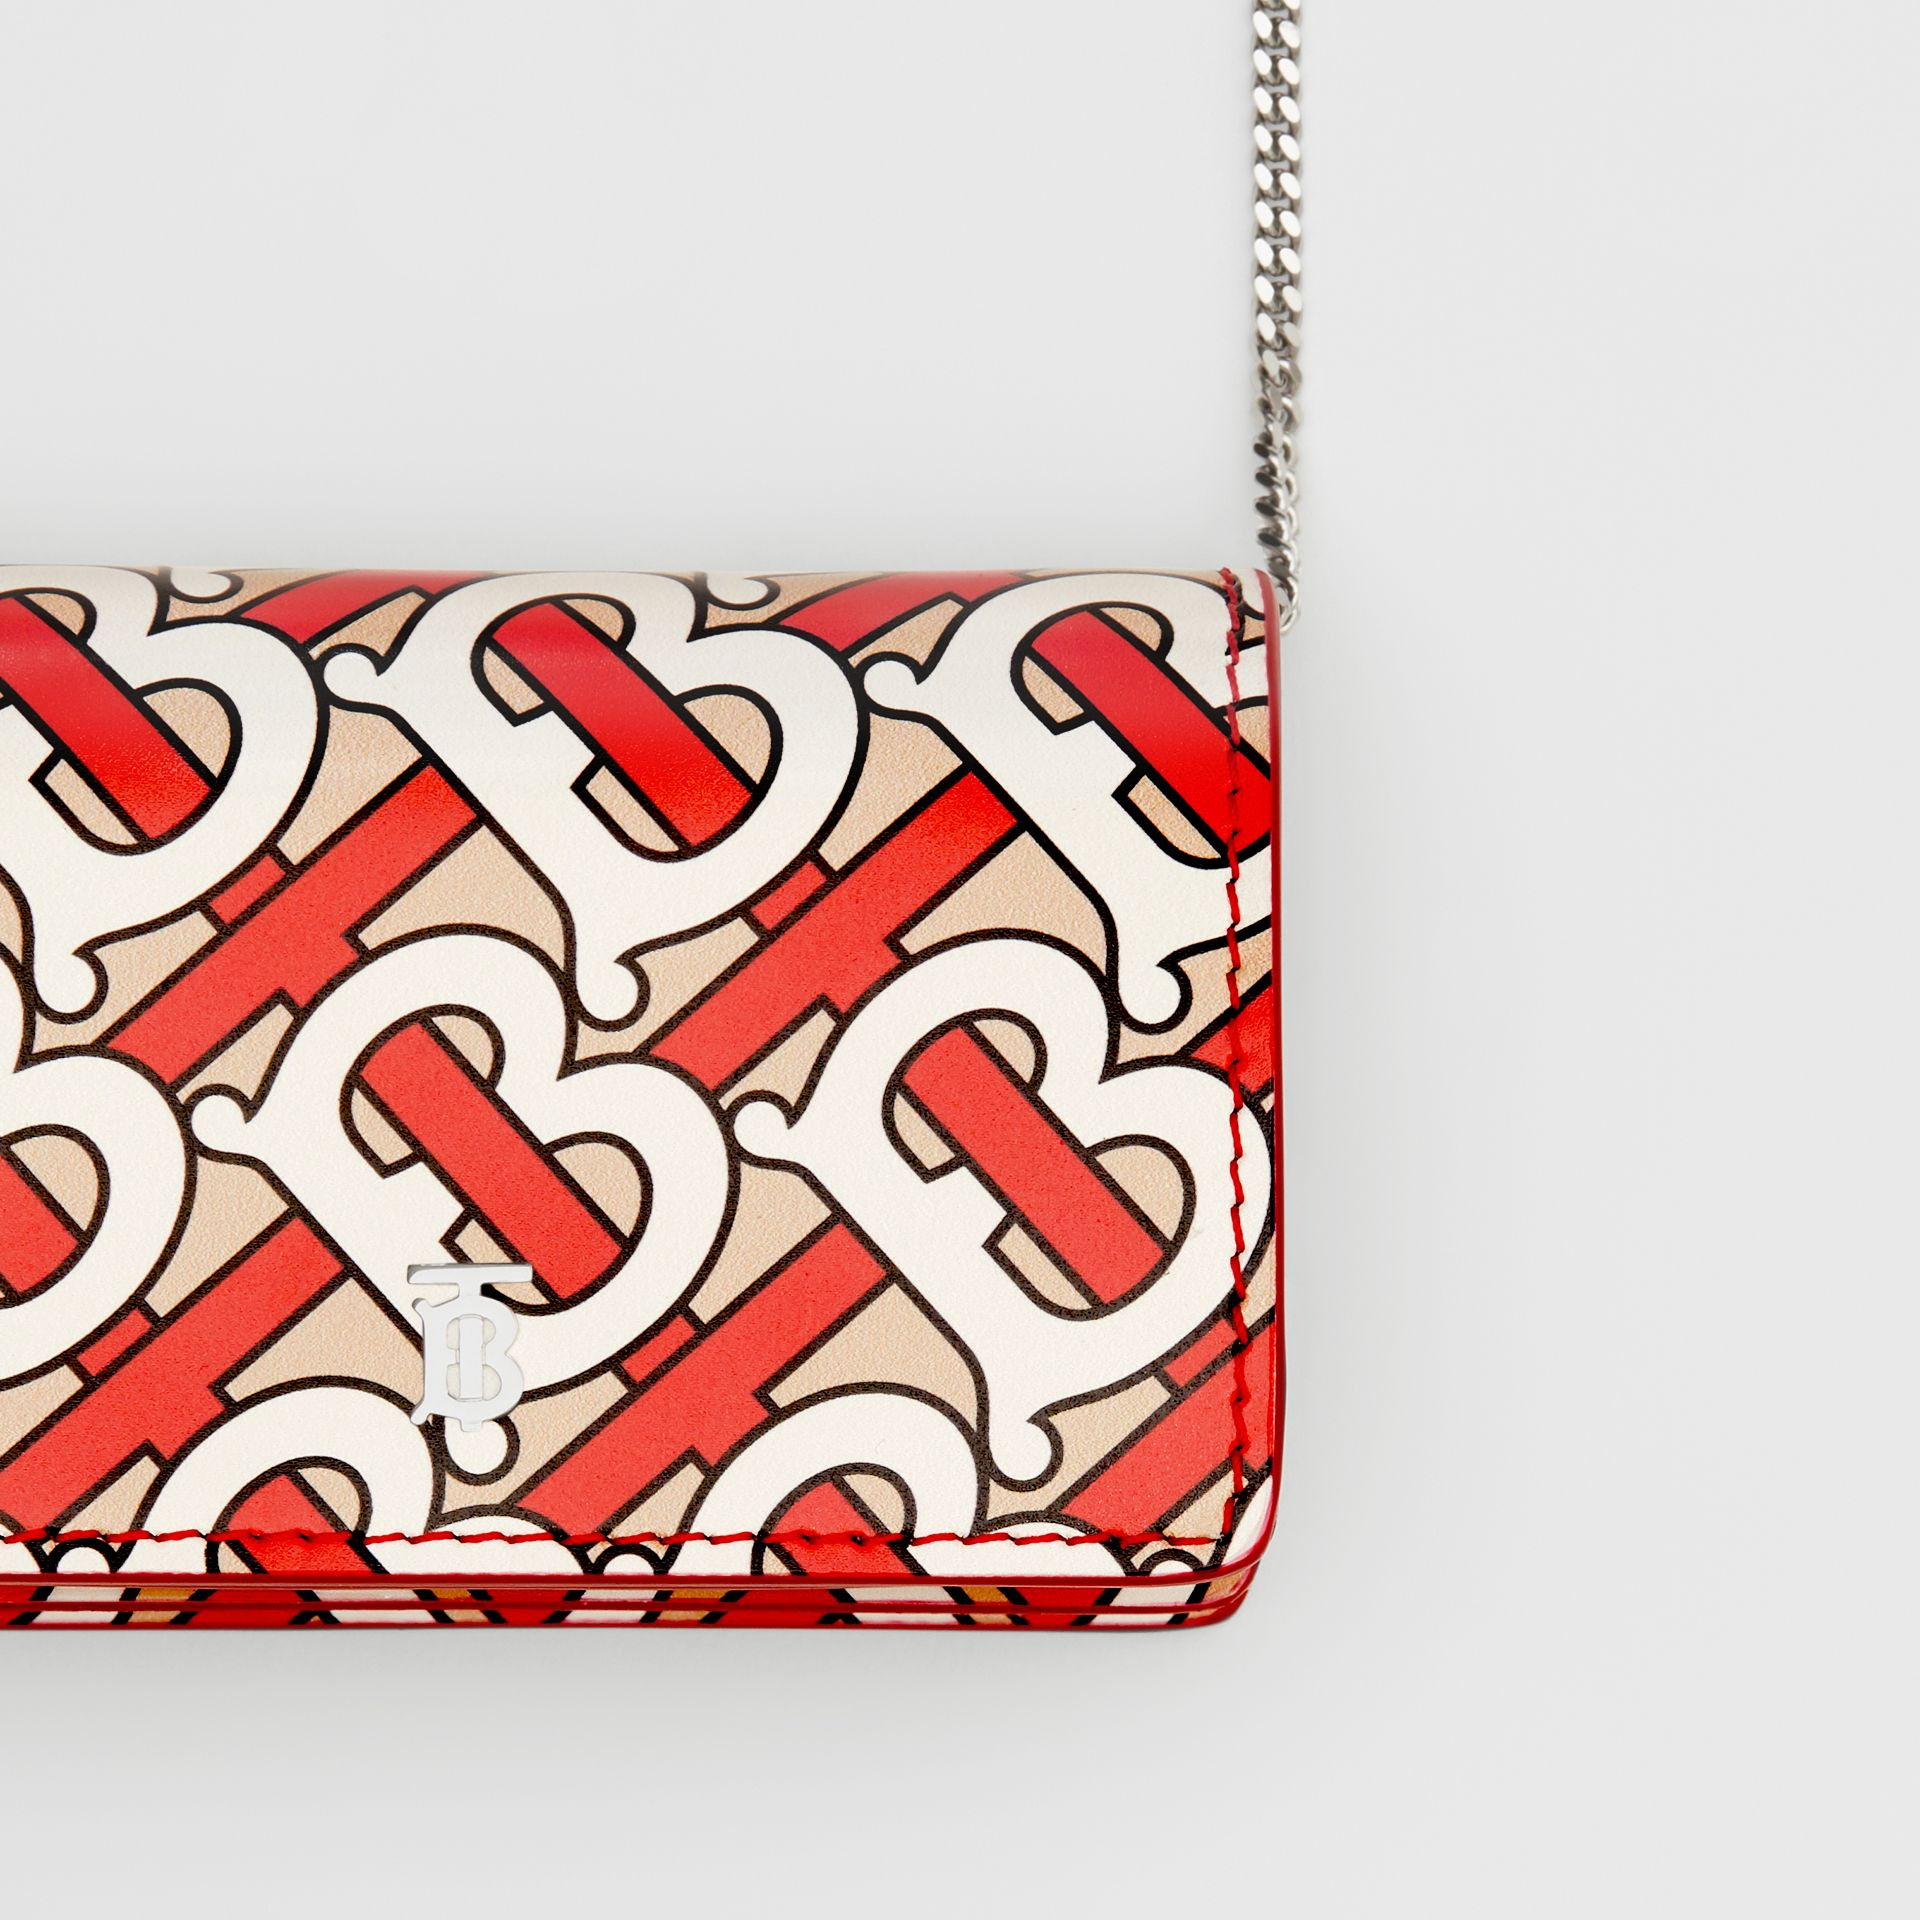 Monogram Print Card Case with Detachable Strap in Vermilion - Women | Burberry - gallery image 1